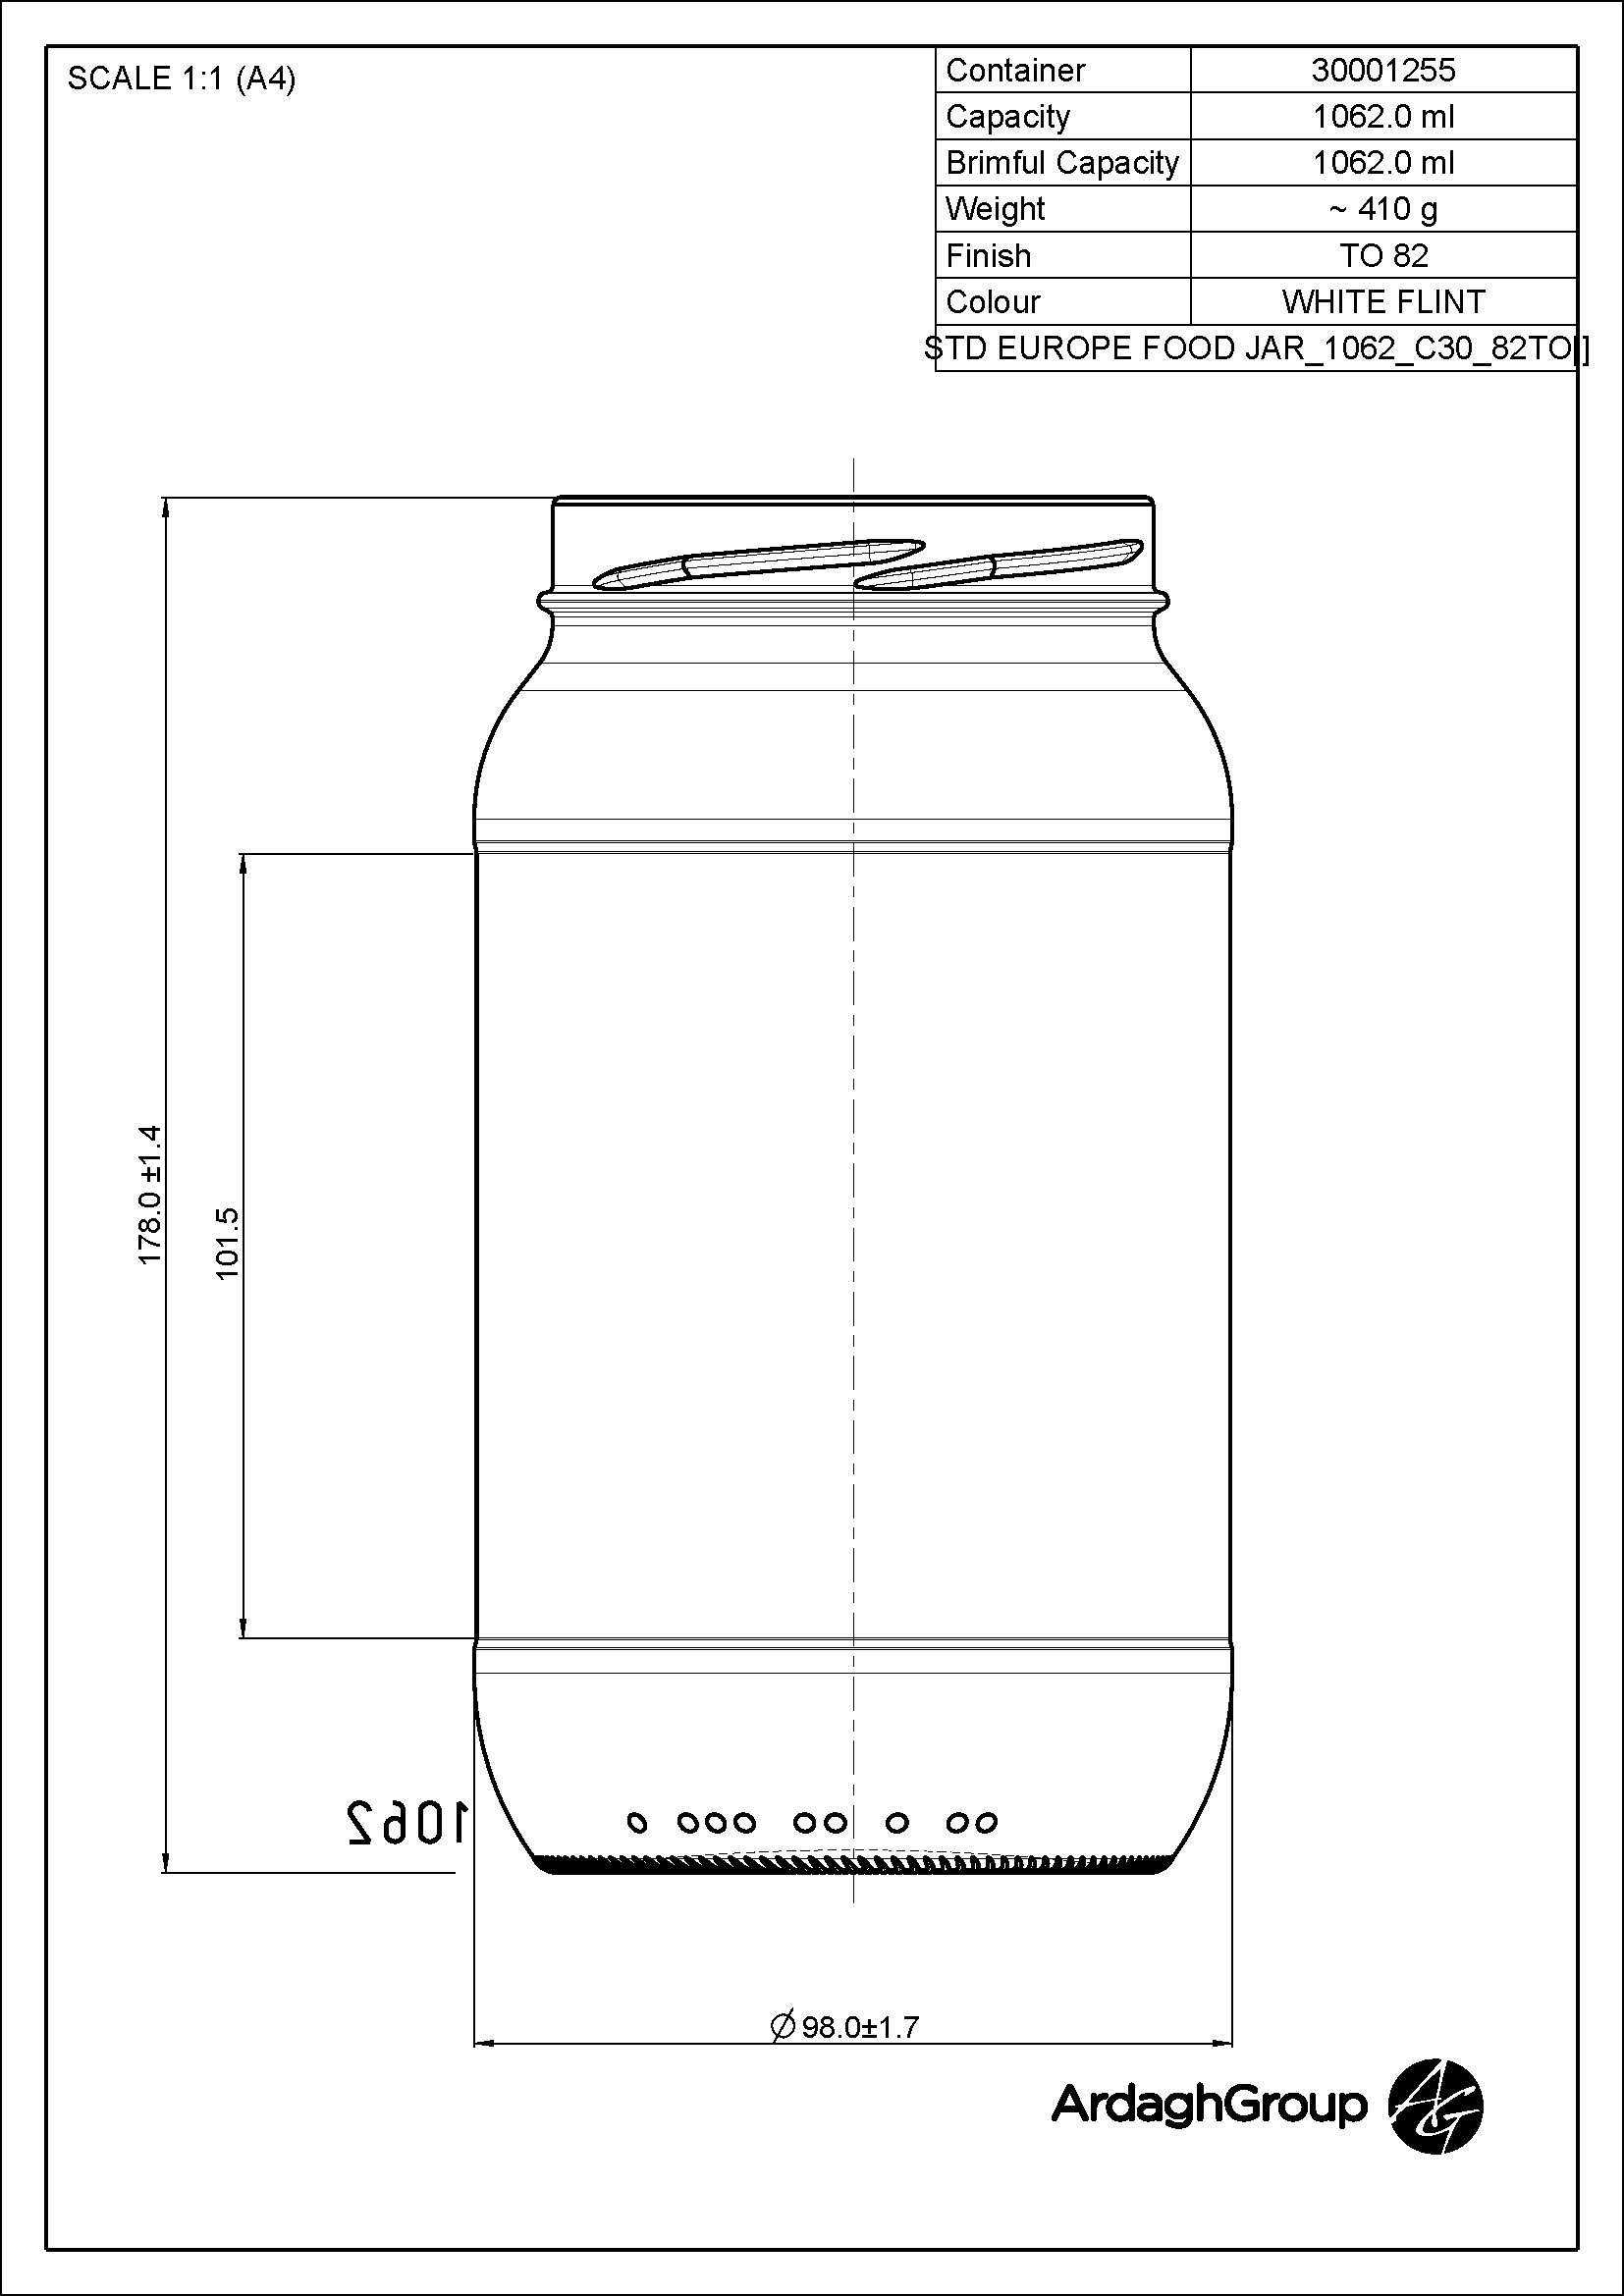 STD EUROPE FOOD JAR 1062 C30 82TO